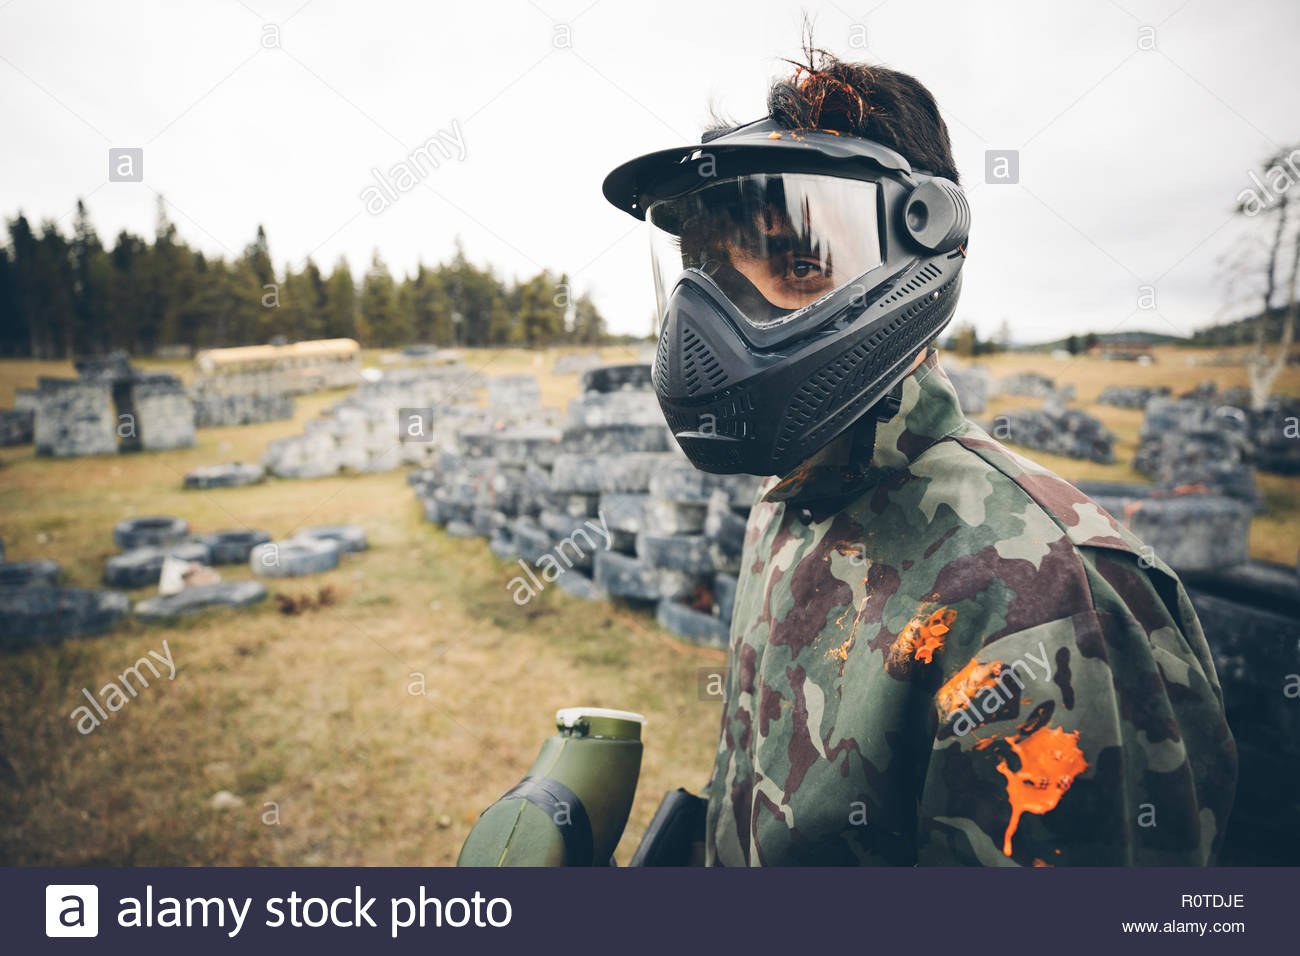 Young man paintballing - Stock Image